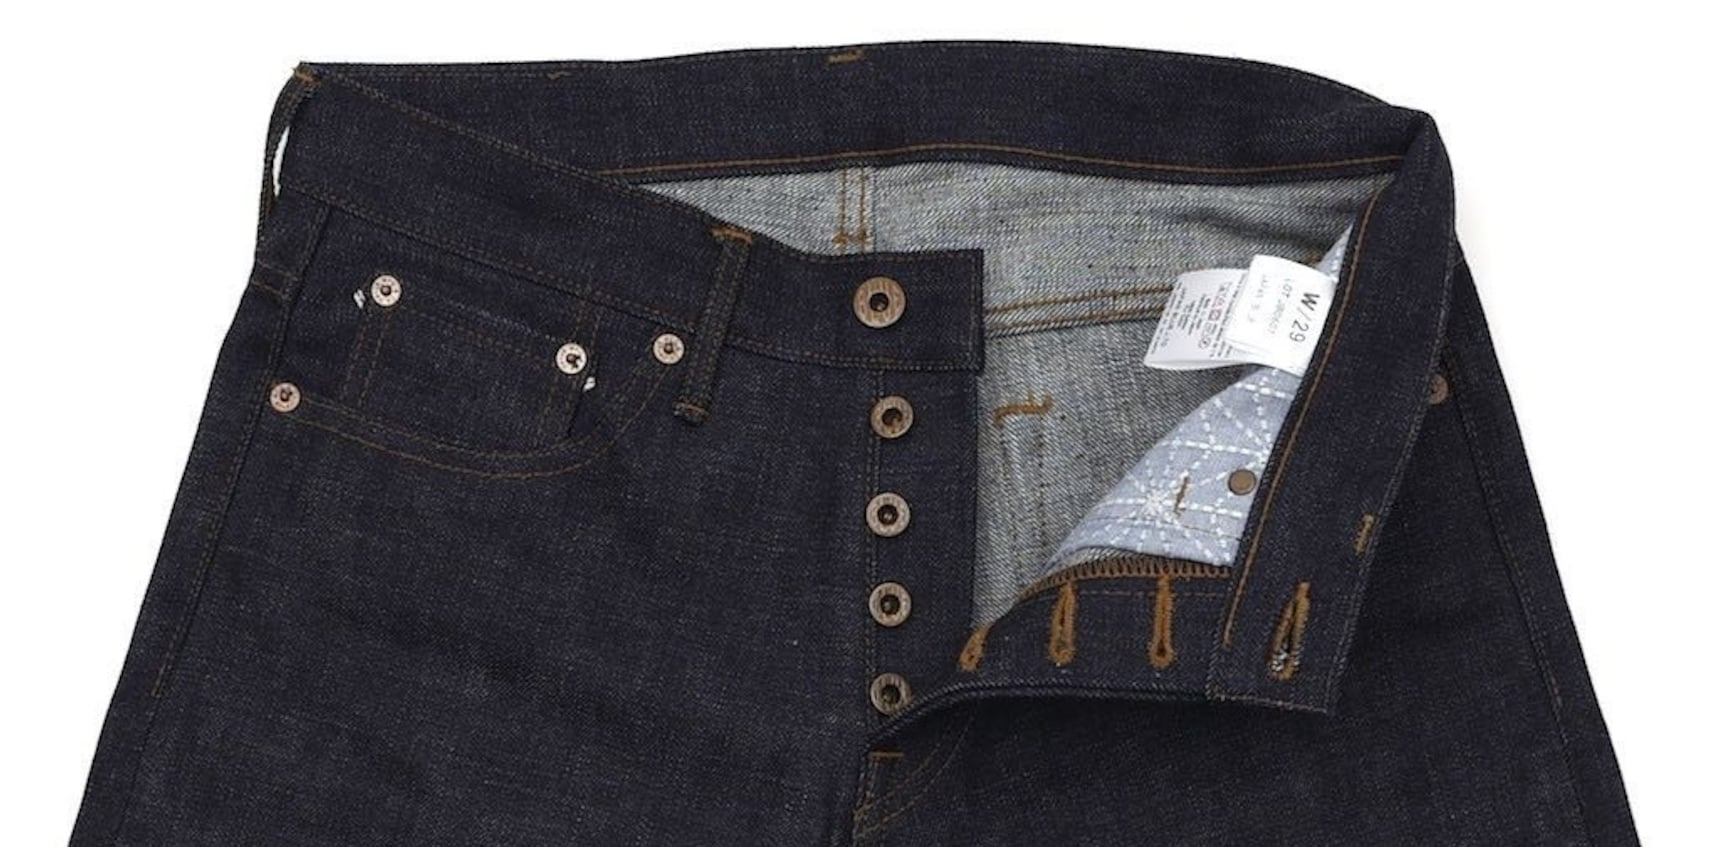 10 Ways to Deck Yourself Out in Okayama Denim